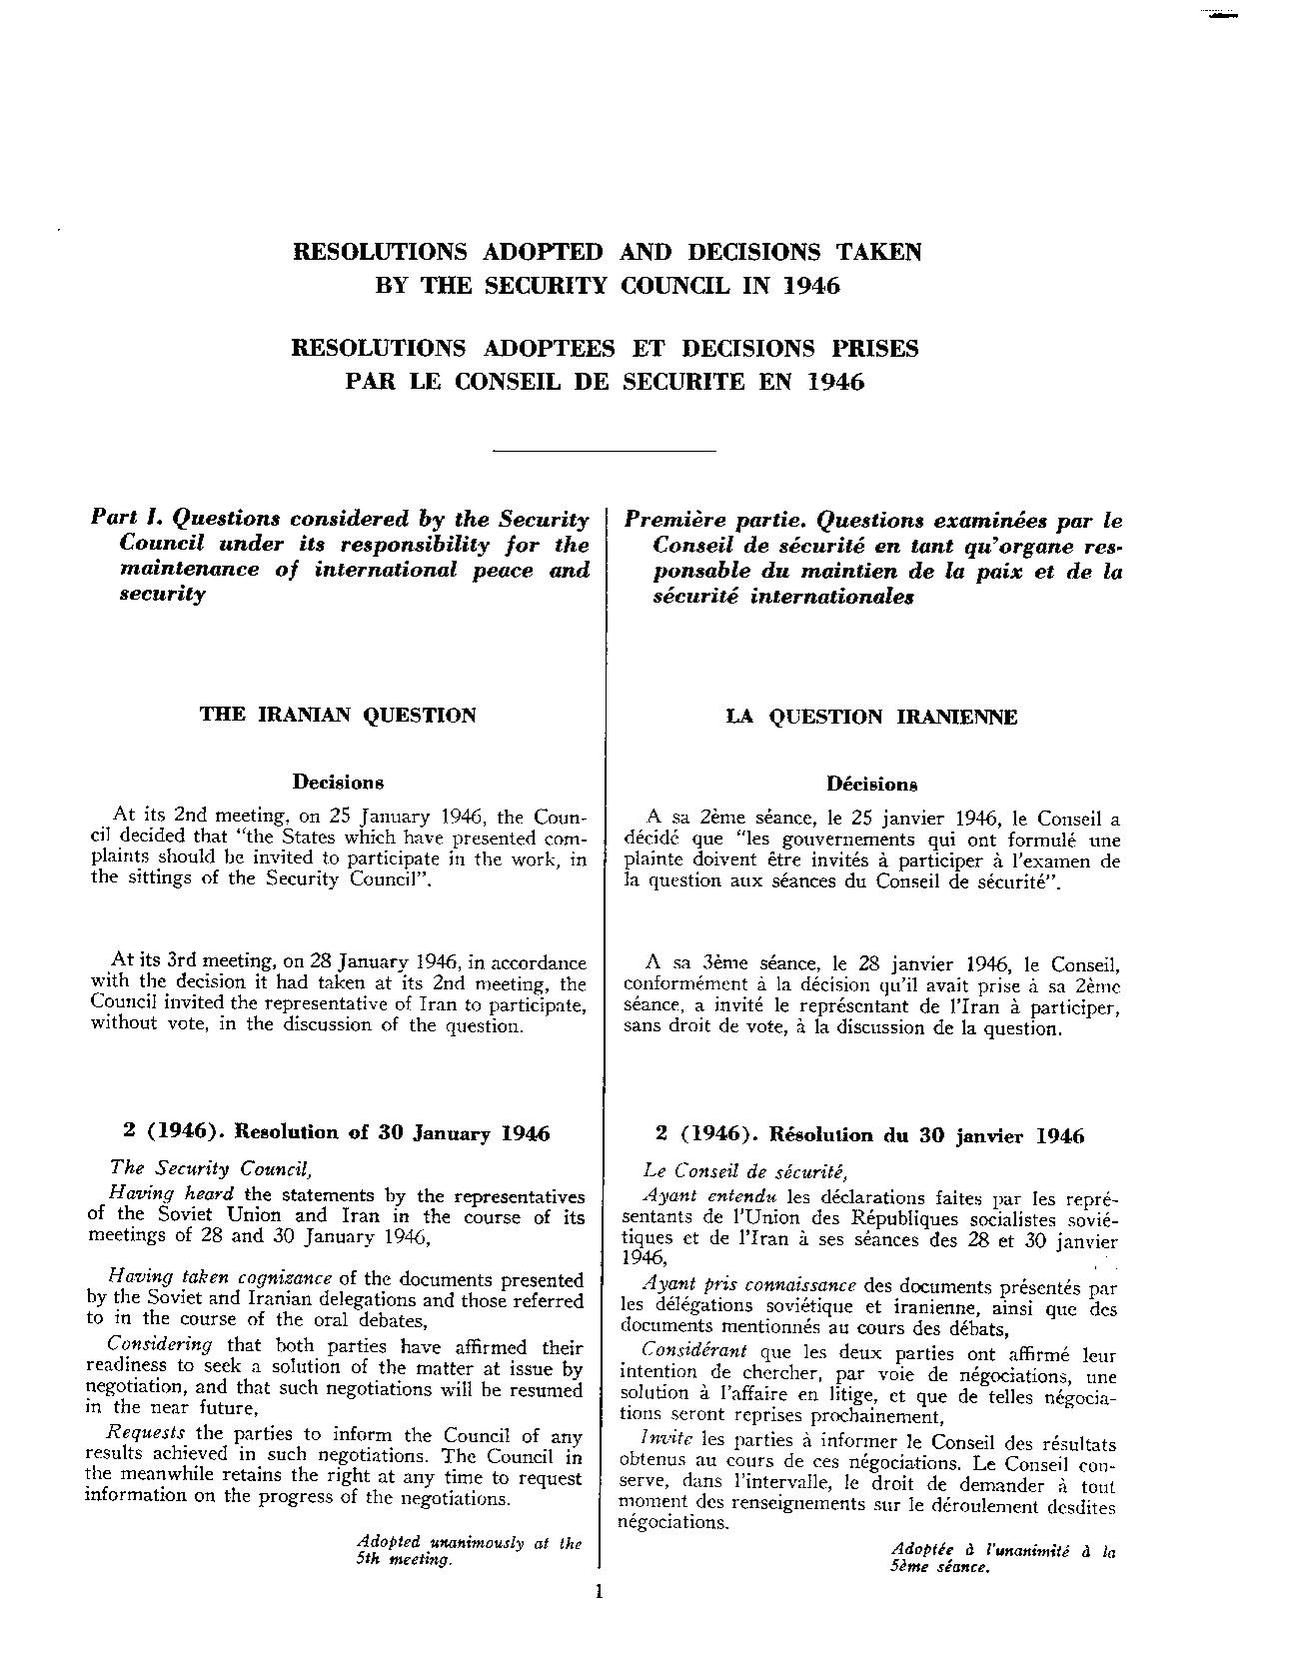 File United Nations Security Council Resolution 2